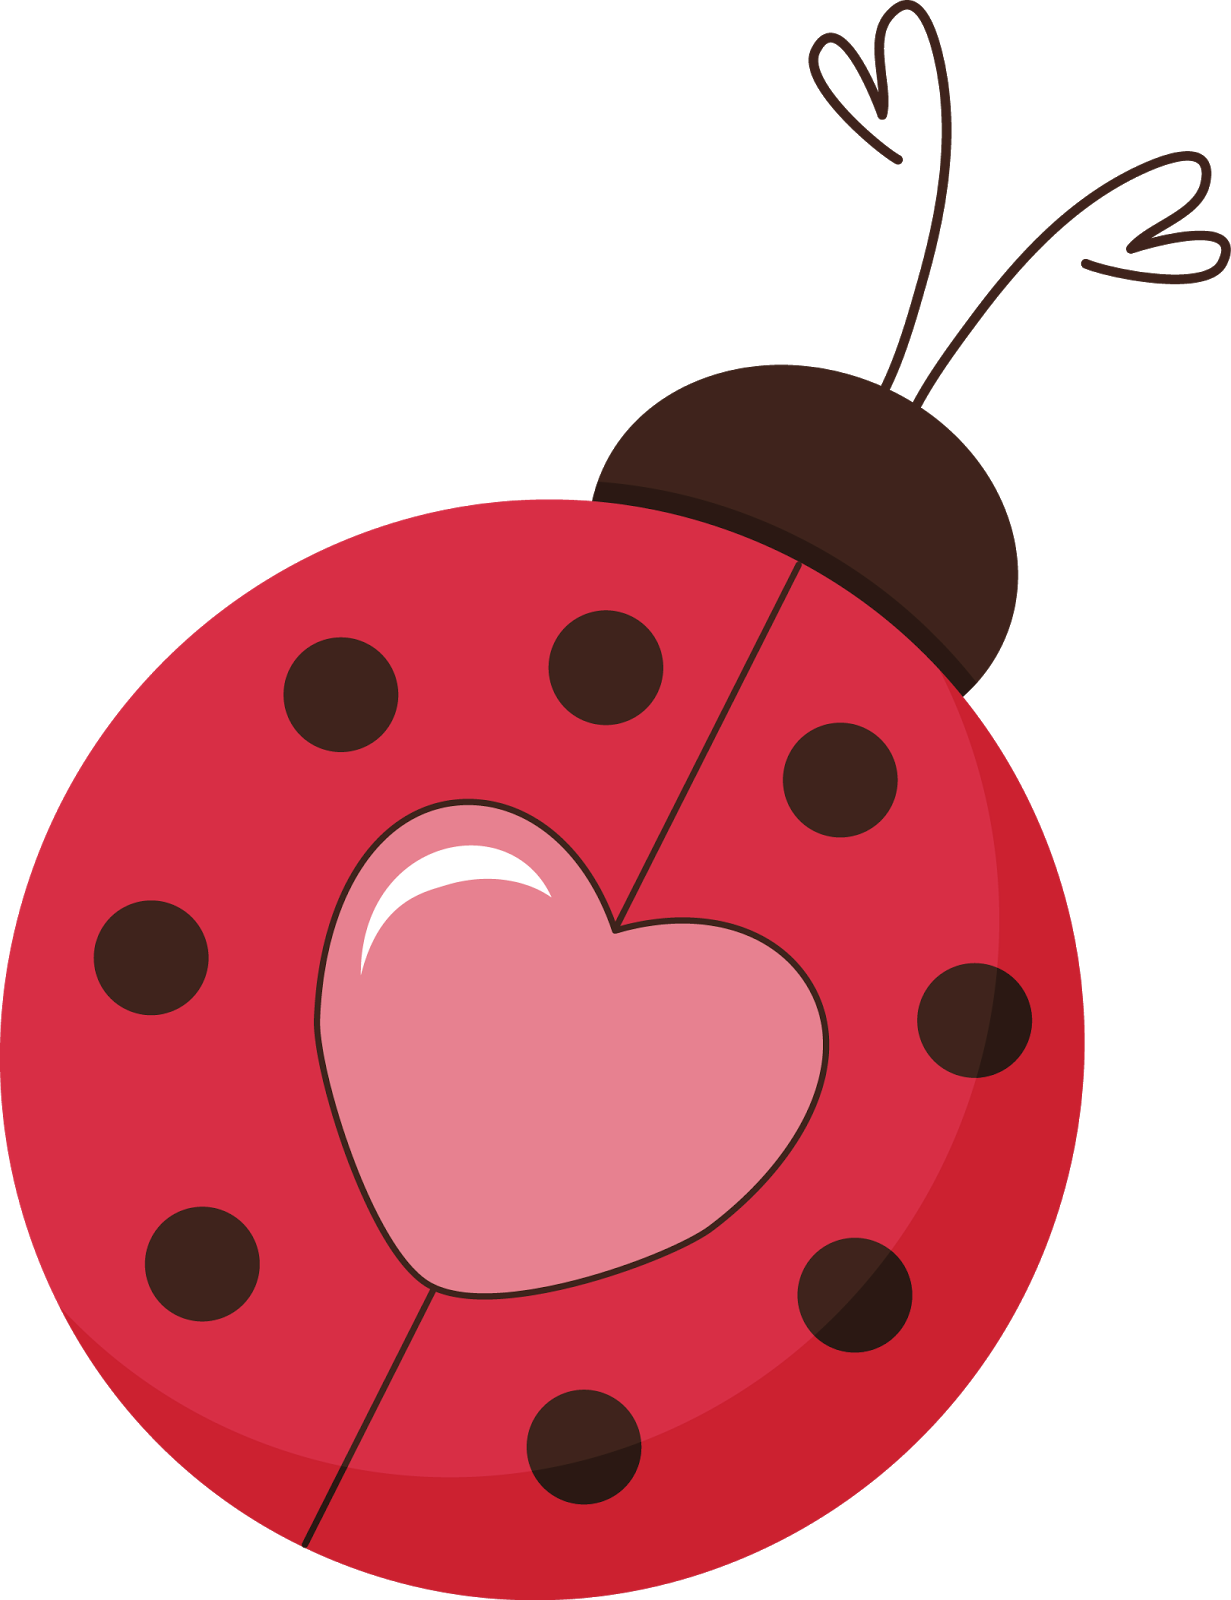 Cute clipart #11, Download drawings